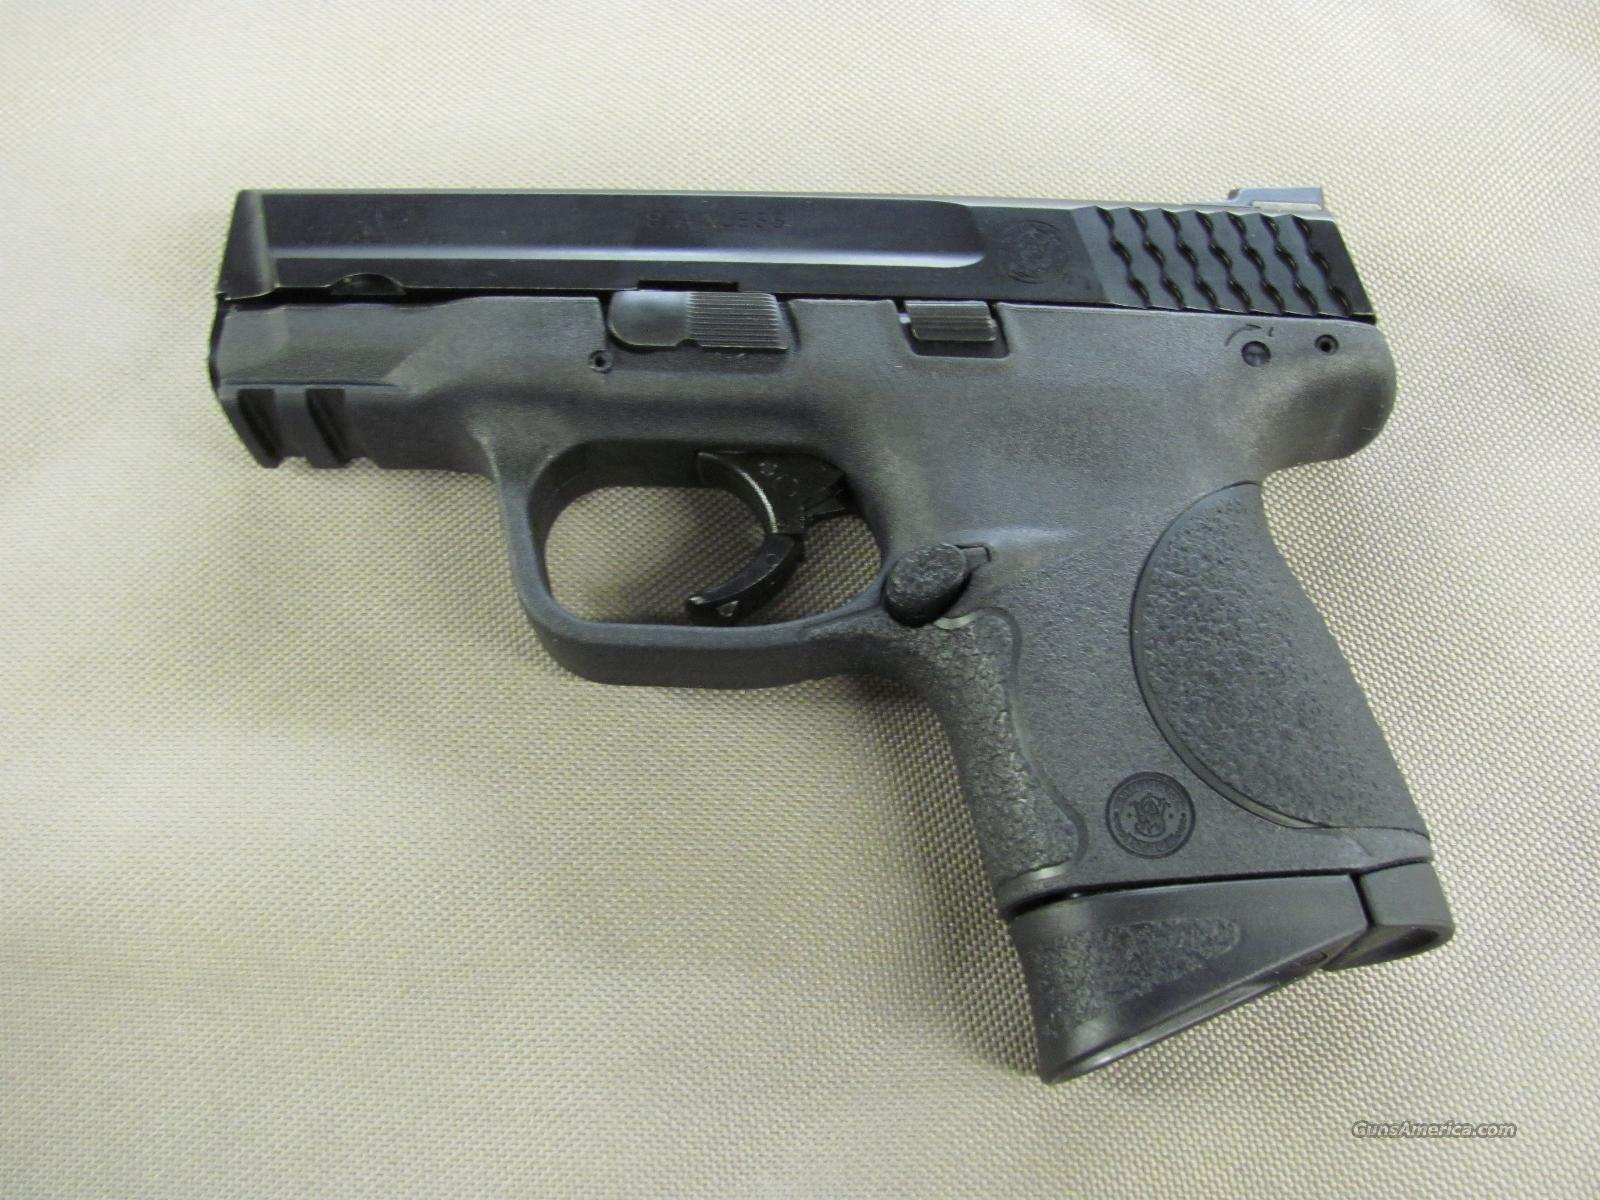 Smith & Wesson M&P 40c  **NEW**  Guns > Pistols > Smith & Wesson Pistols - Autos > Polymer Frame